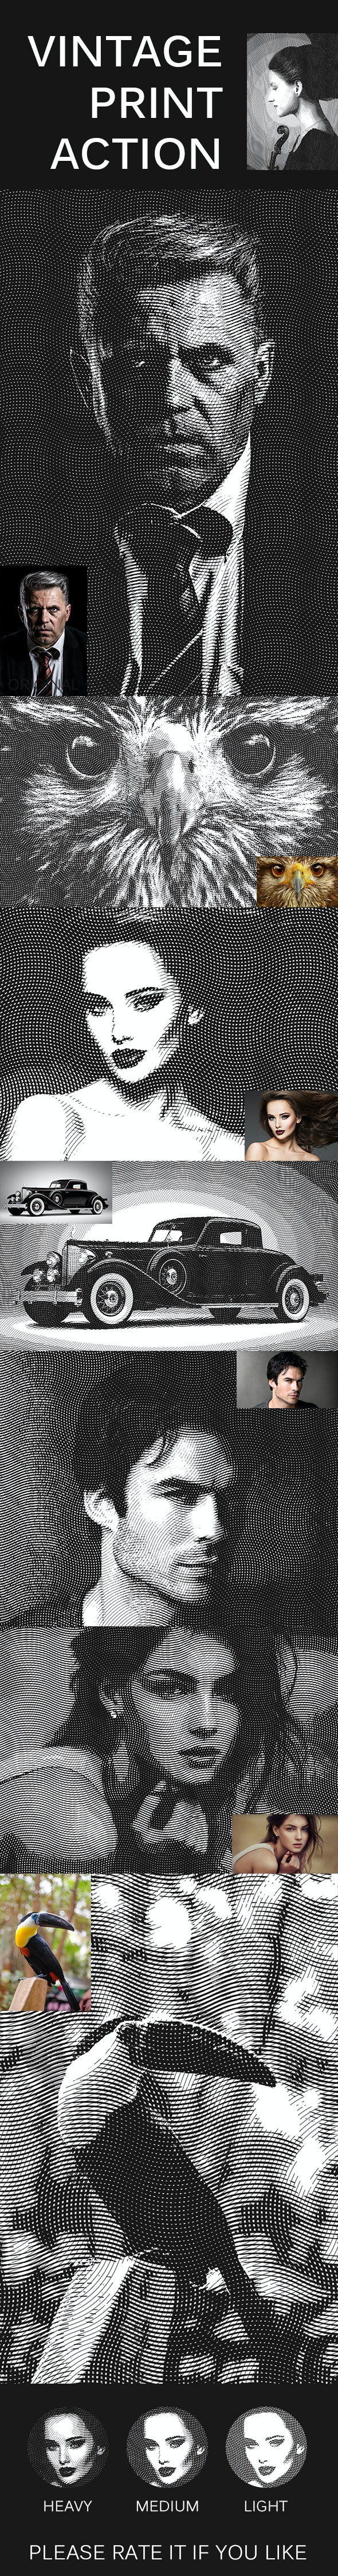 Vintage Print Action - Photo Effects Actions